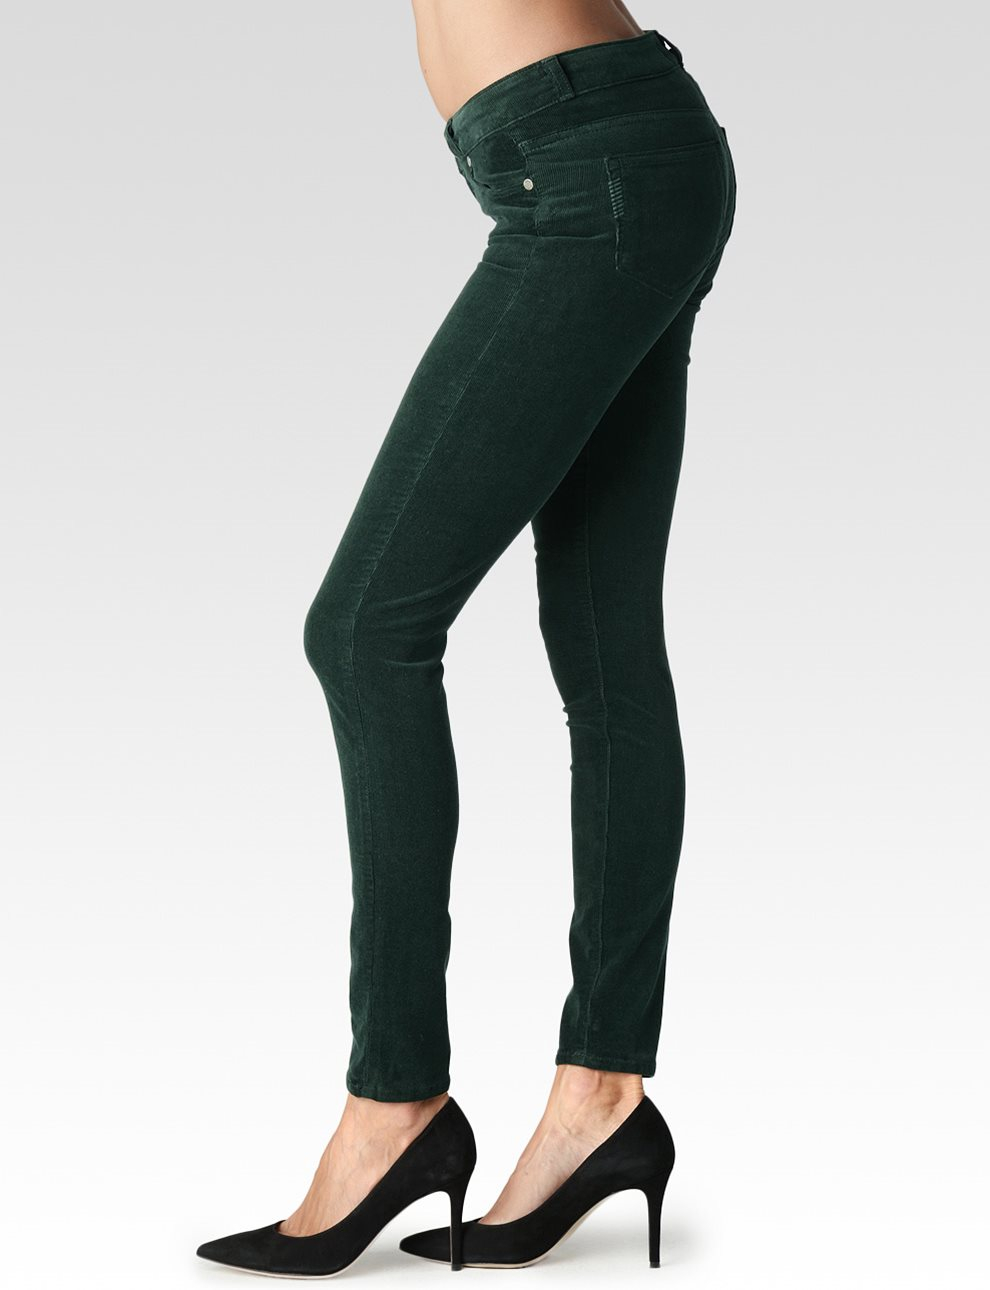 Lastest Unique Lucy Womens Destination Anywhere Pants Forest Green L57G1570